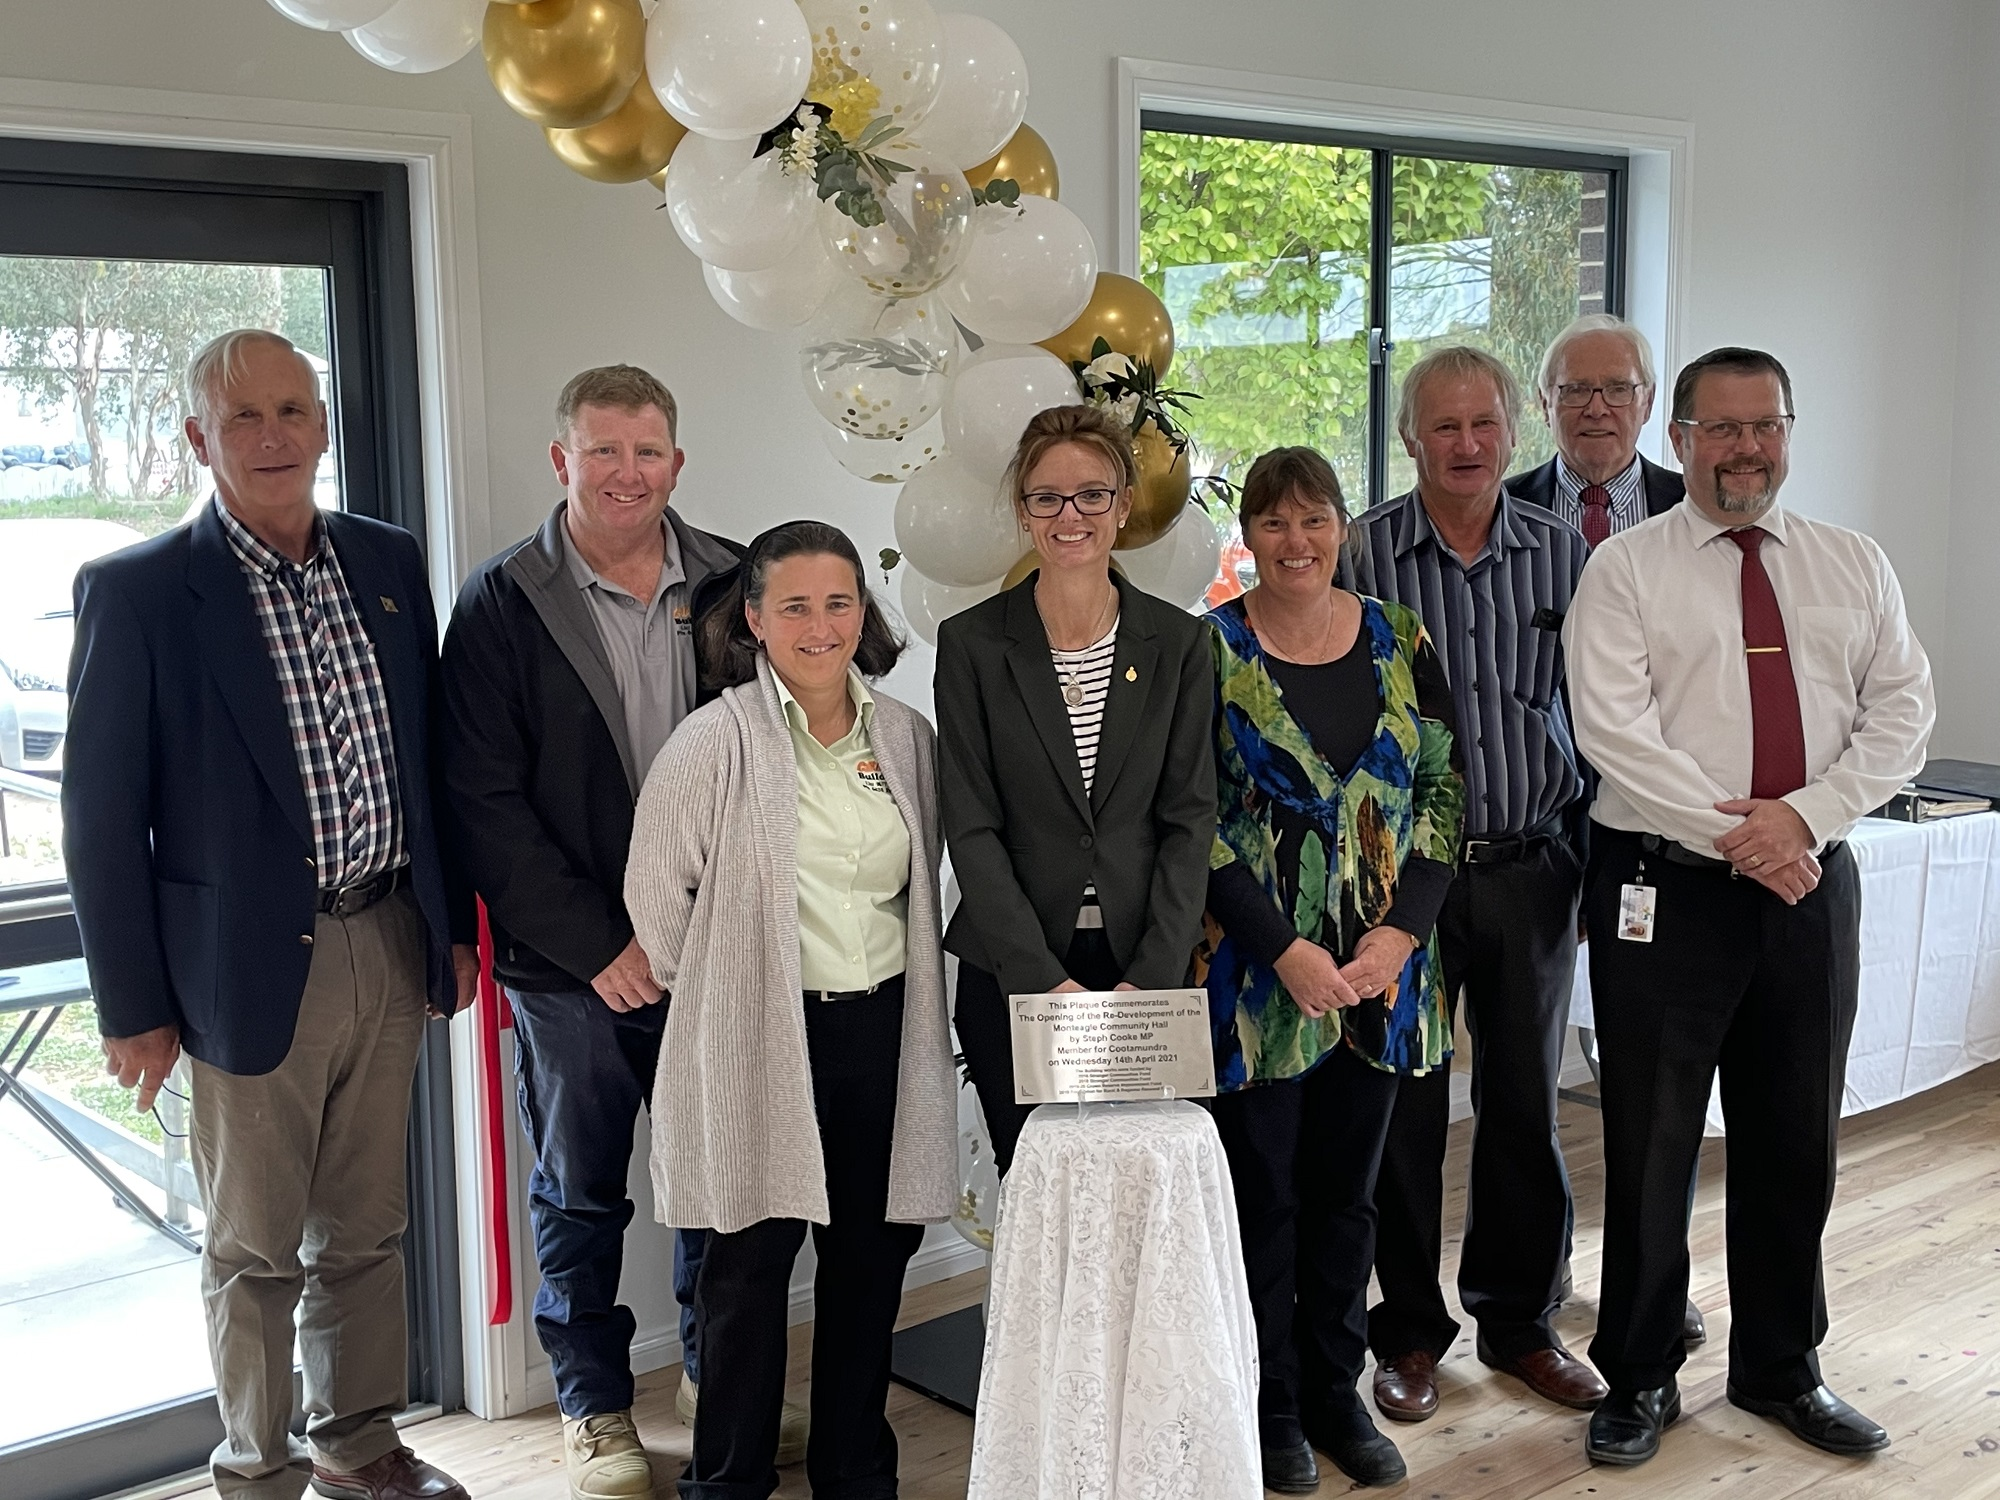 Steph Cooke stands with a group of smiling people in front of a white and golf balloon arch and behind a small silver plaque on a table.